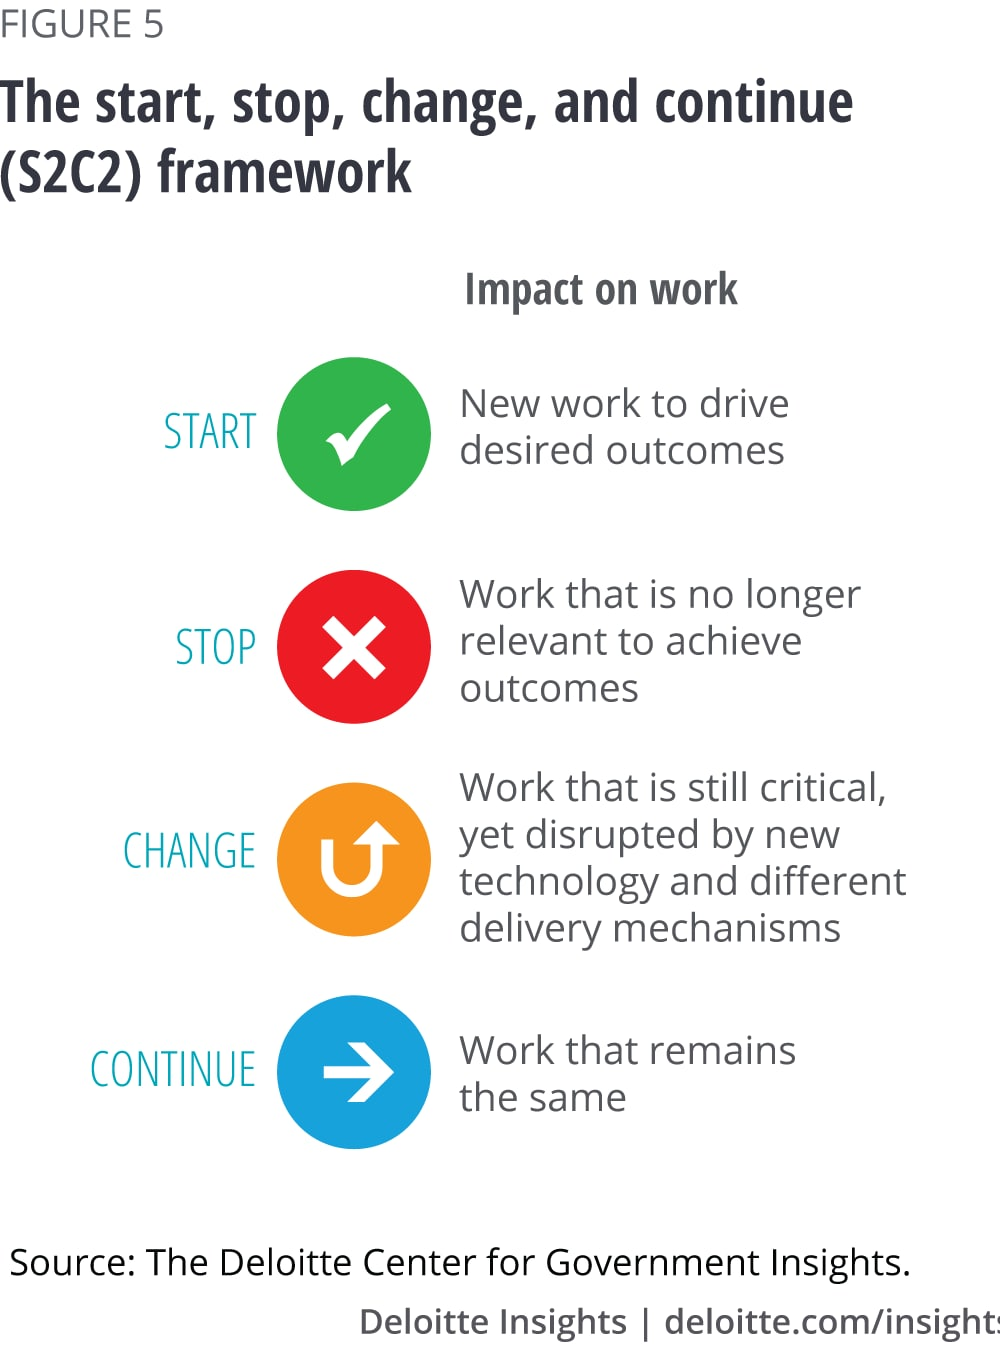 The start, stop, change, and continue (S2C2) framework